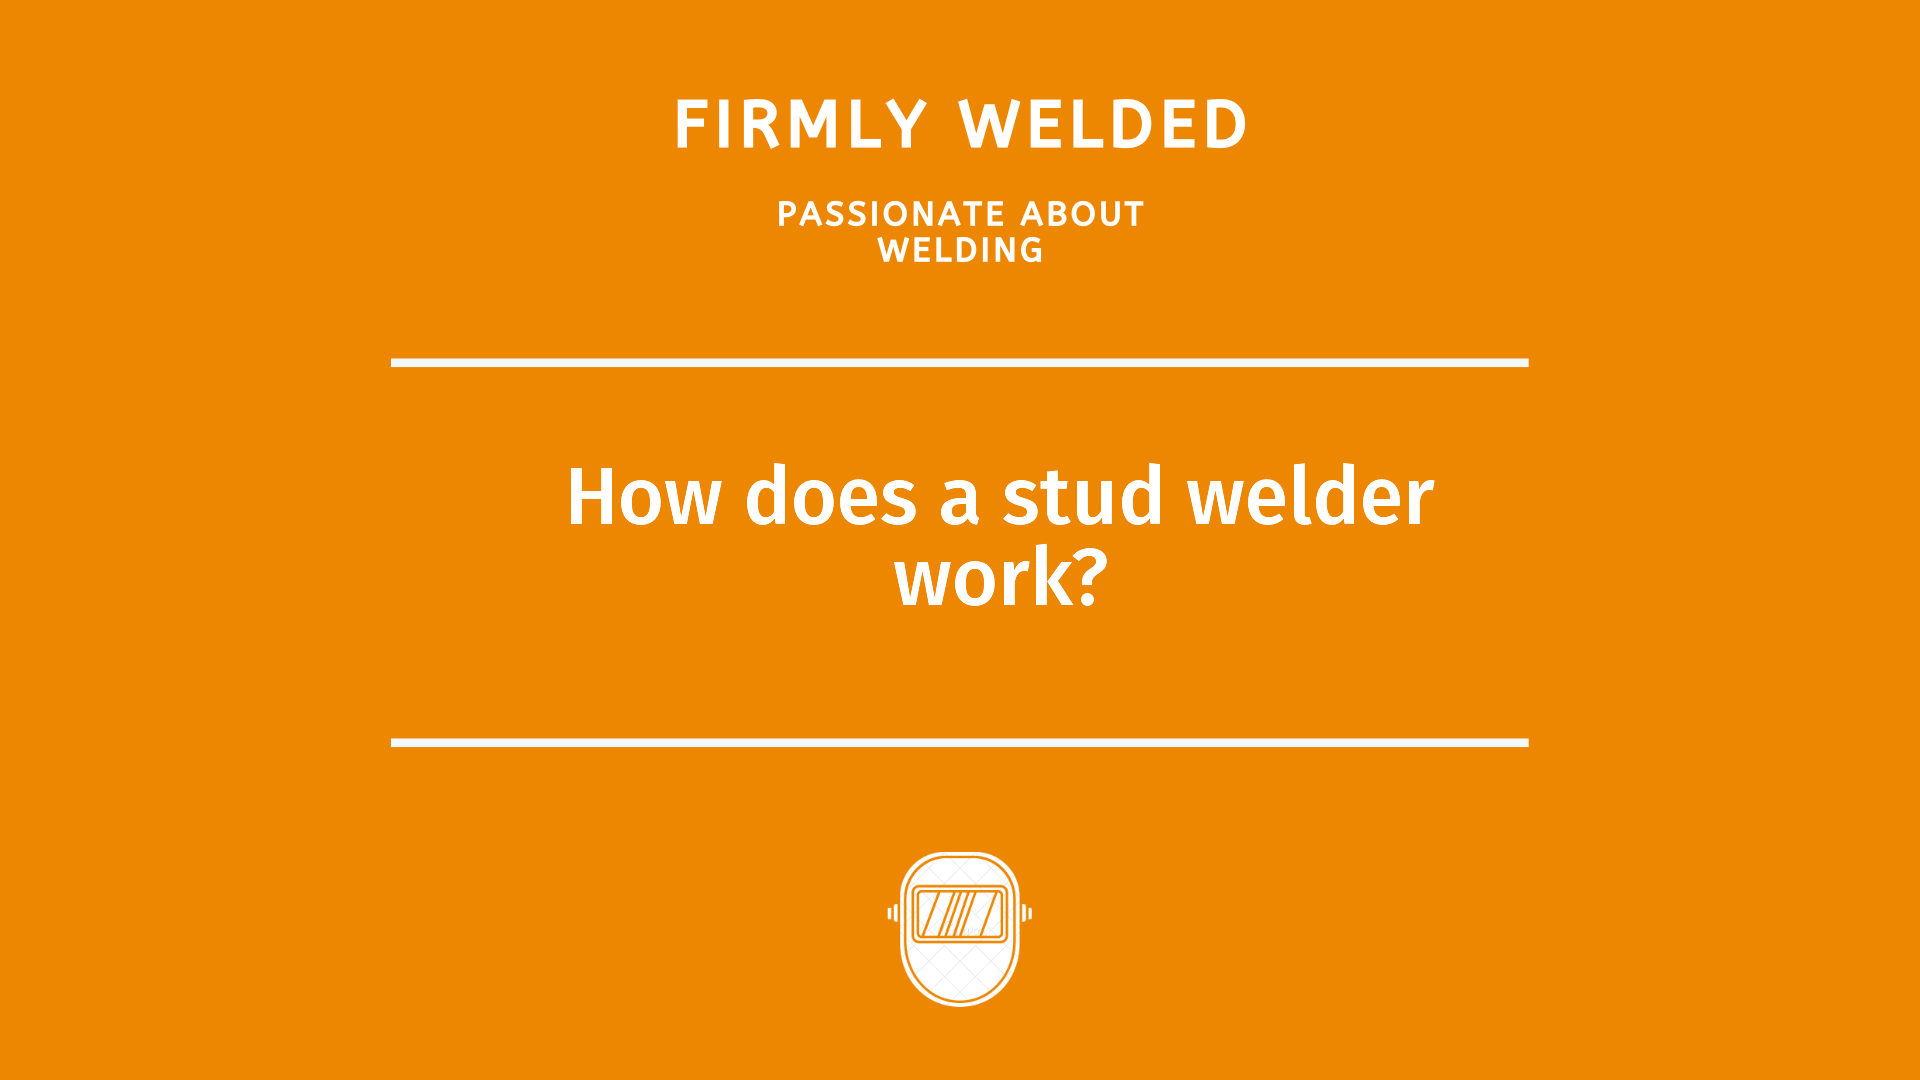 How does a stud welder work?